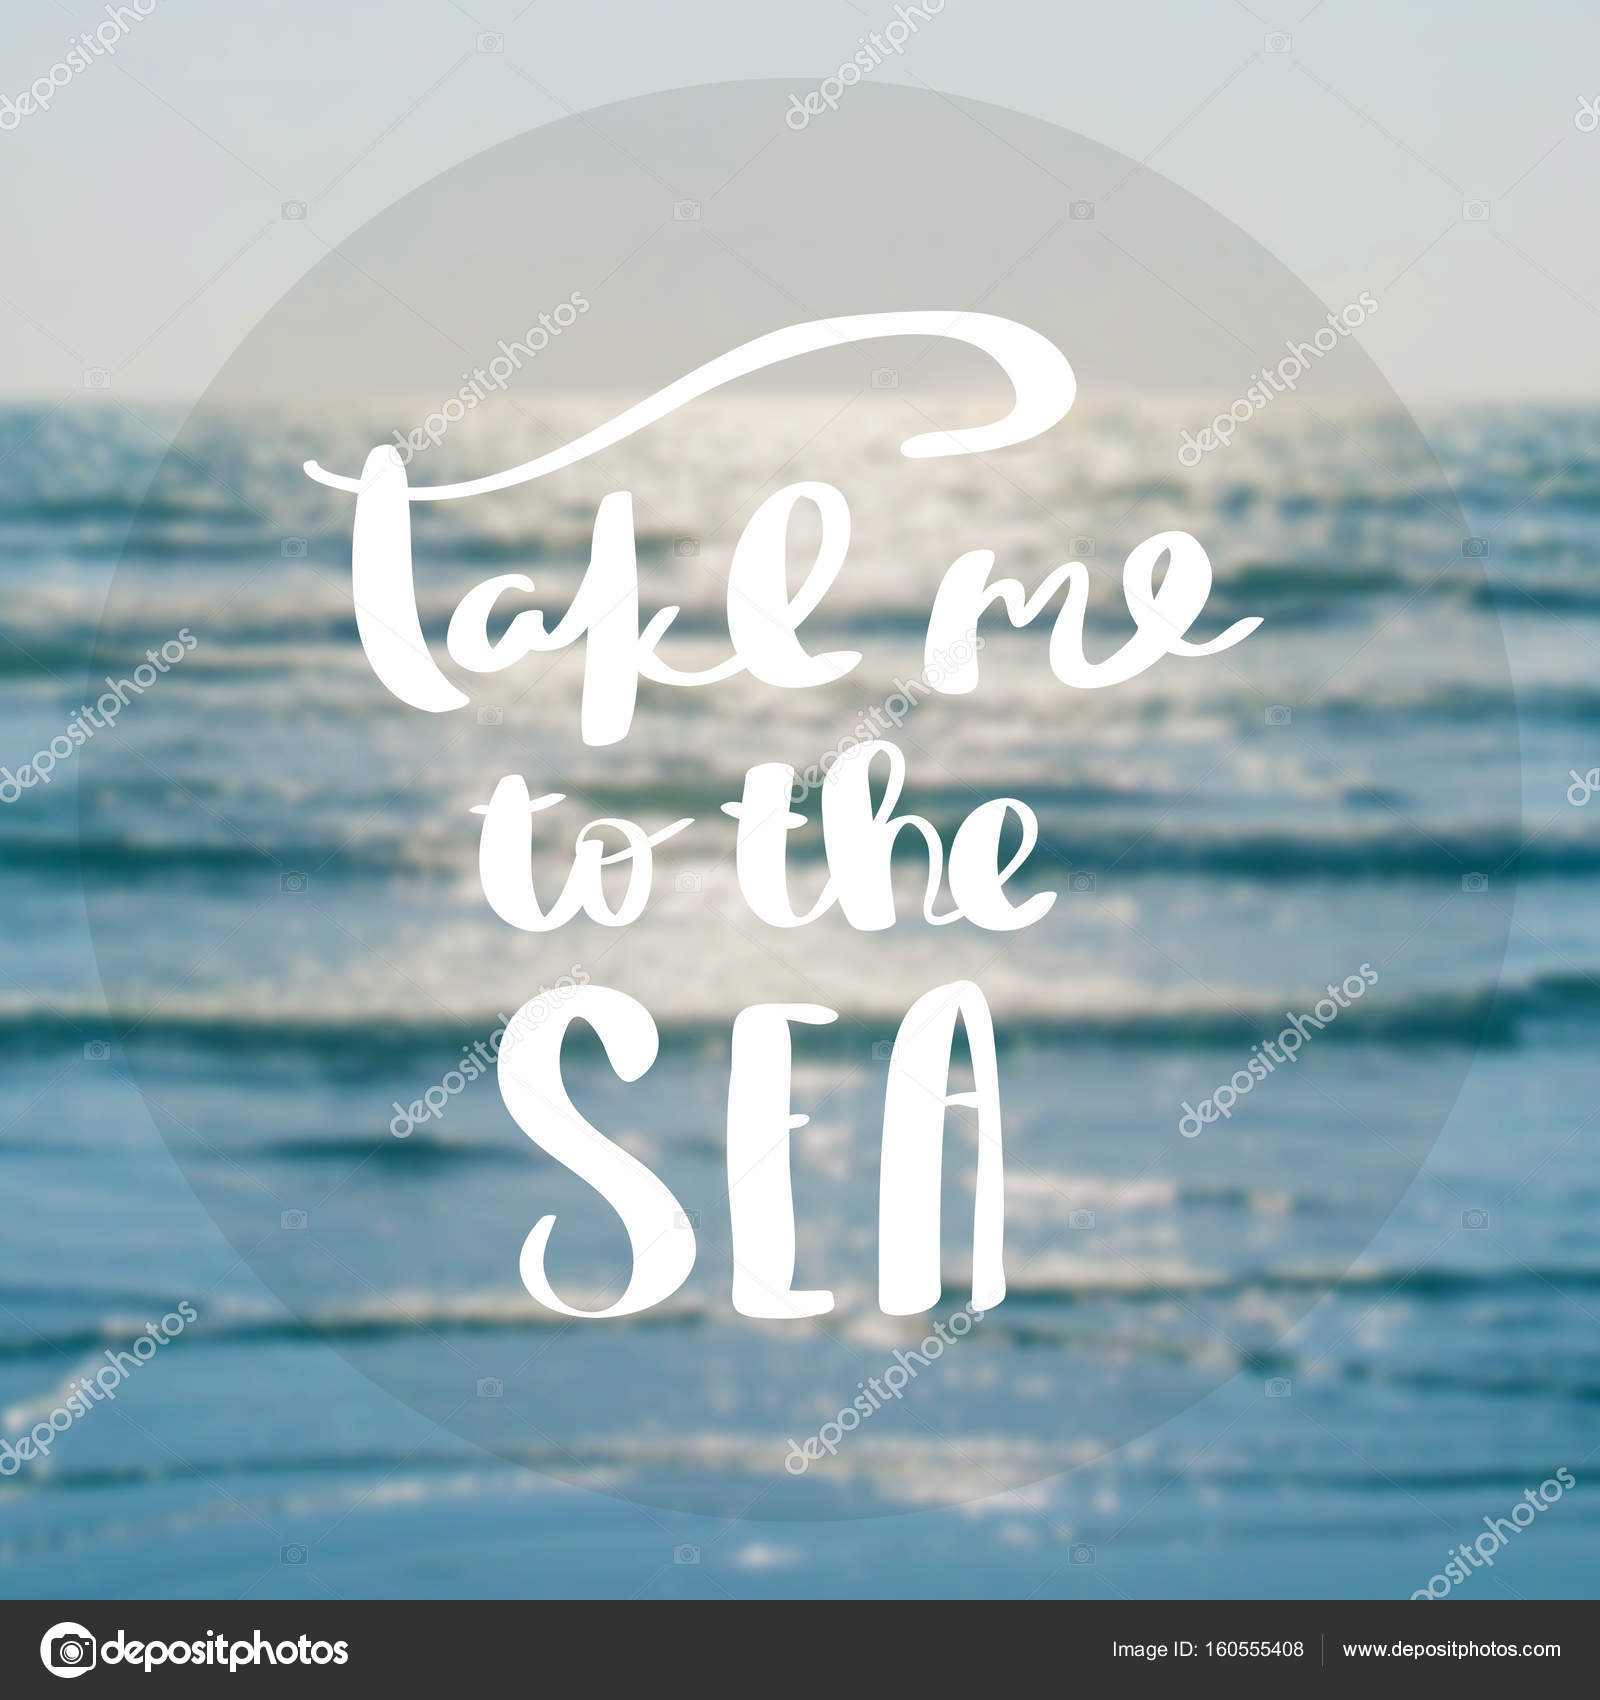 Take me to the ocean quotes | Take me to the sea Inspiration ...